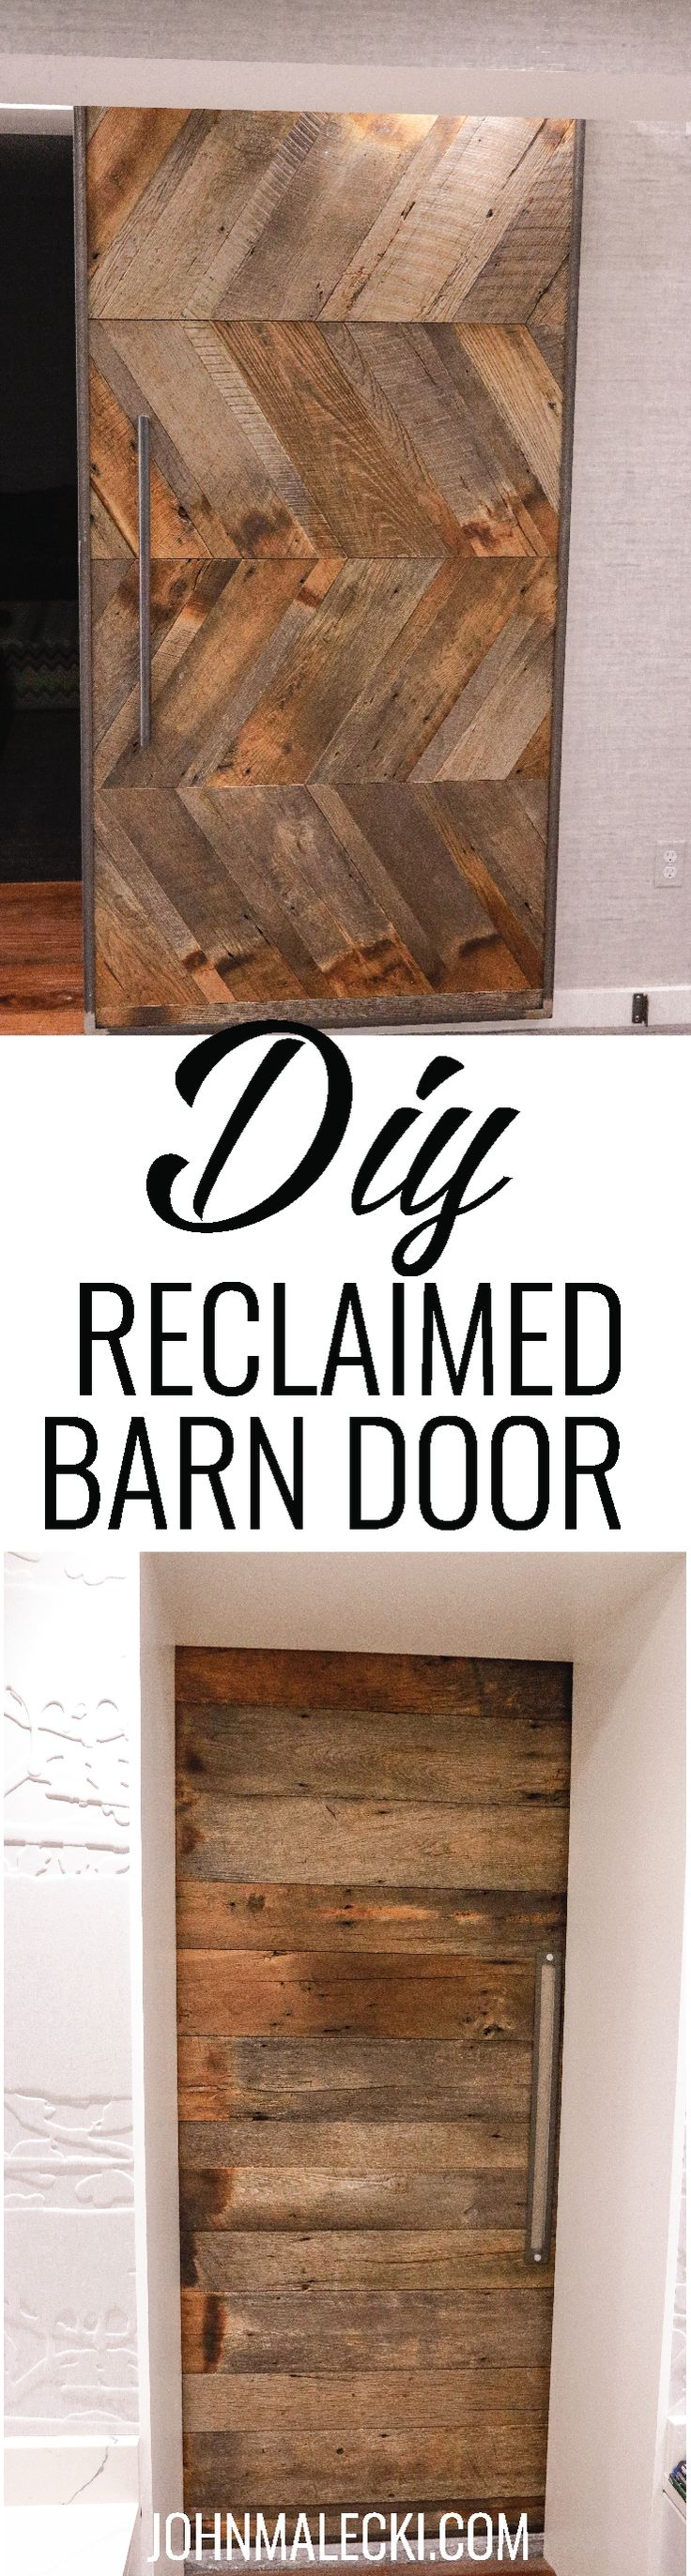 13 best Barn Doors images on Pinterest